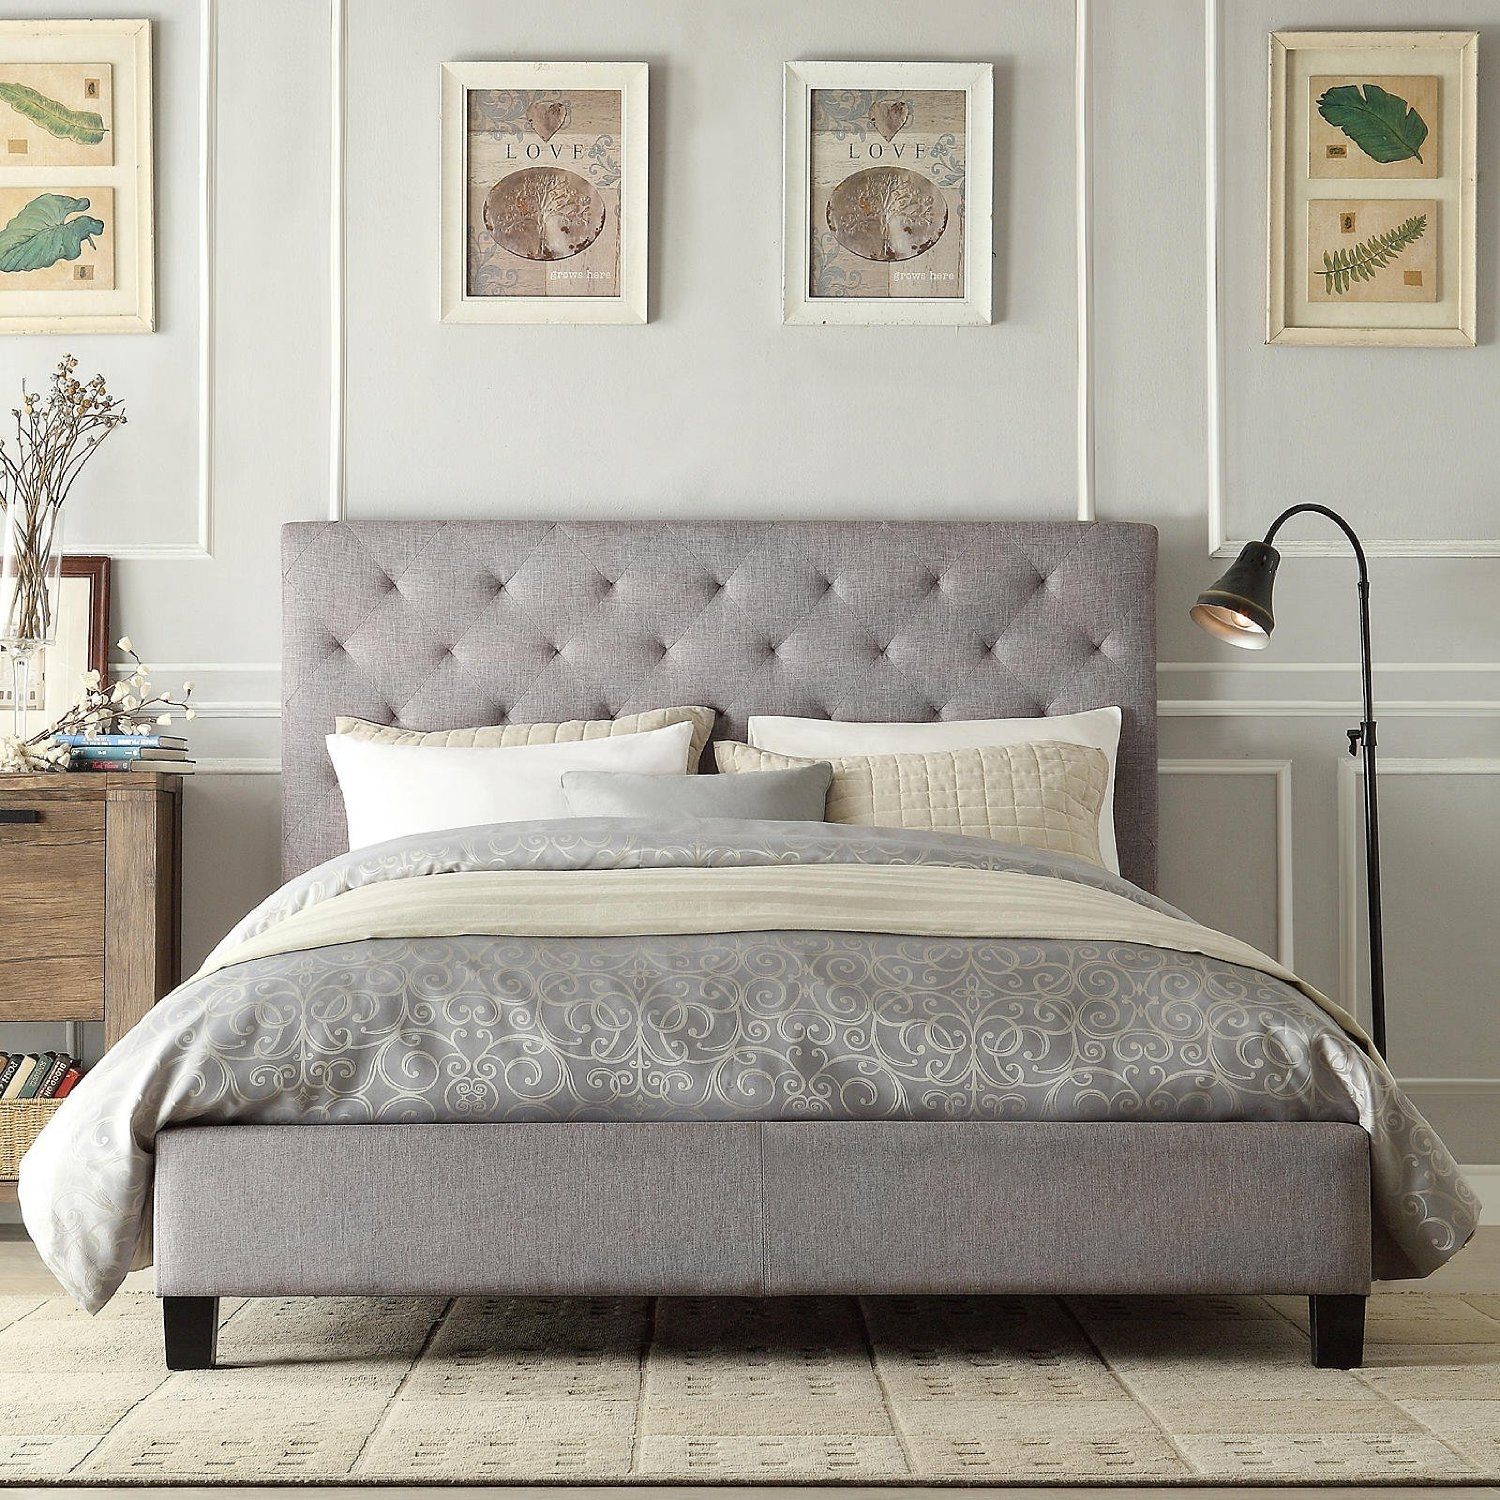 Queen Size Button Tufted Grey Upholstered Platform Bed Fastfurnishings Com